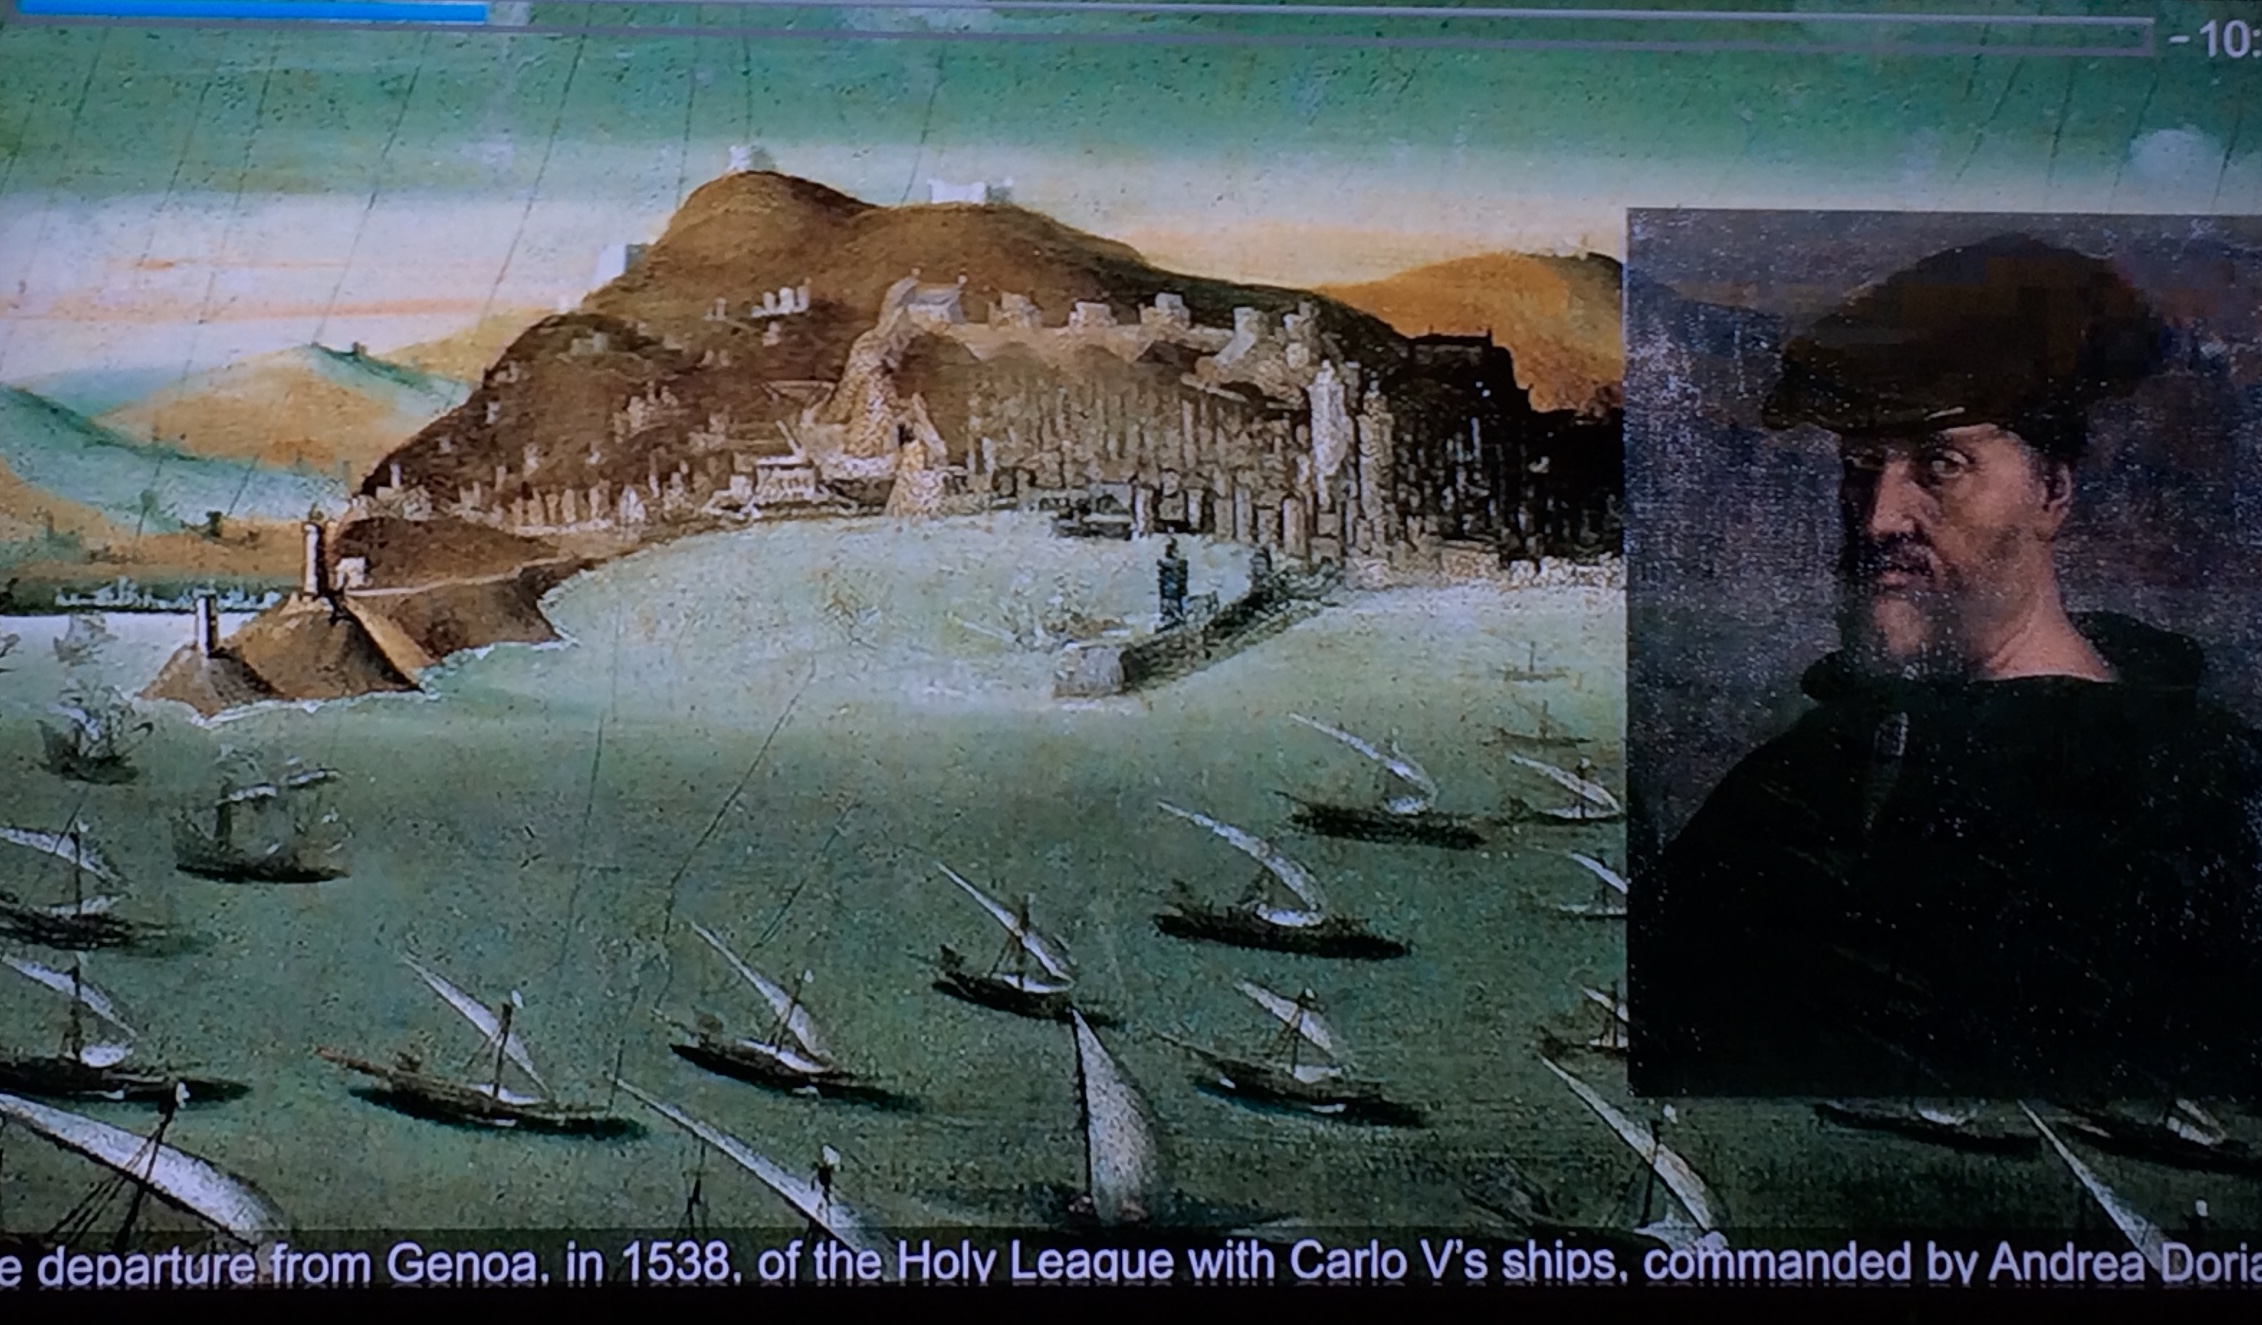 The fleet of the Holy League under Andrea Doria leaves Genoa in 1538. (Taken from a video on display at the Galata Museo del Mare, Genoa)